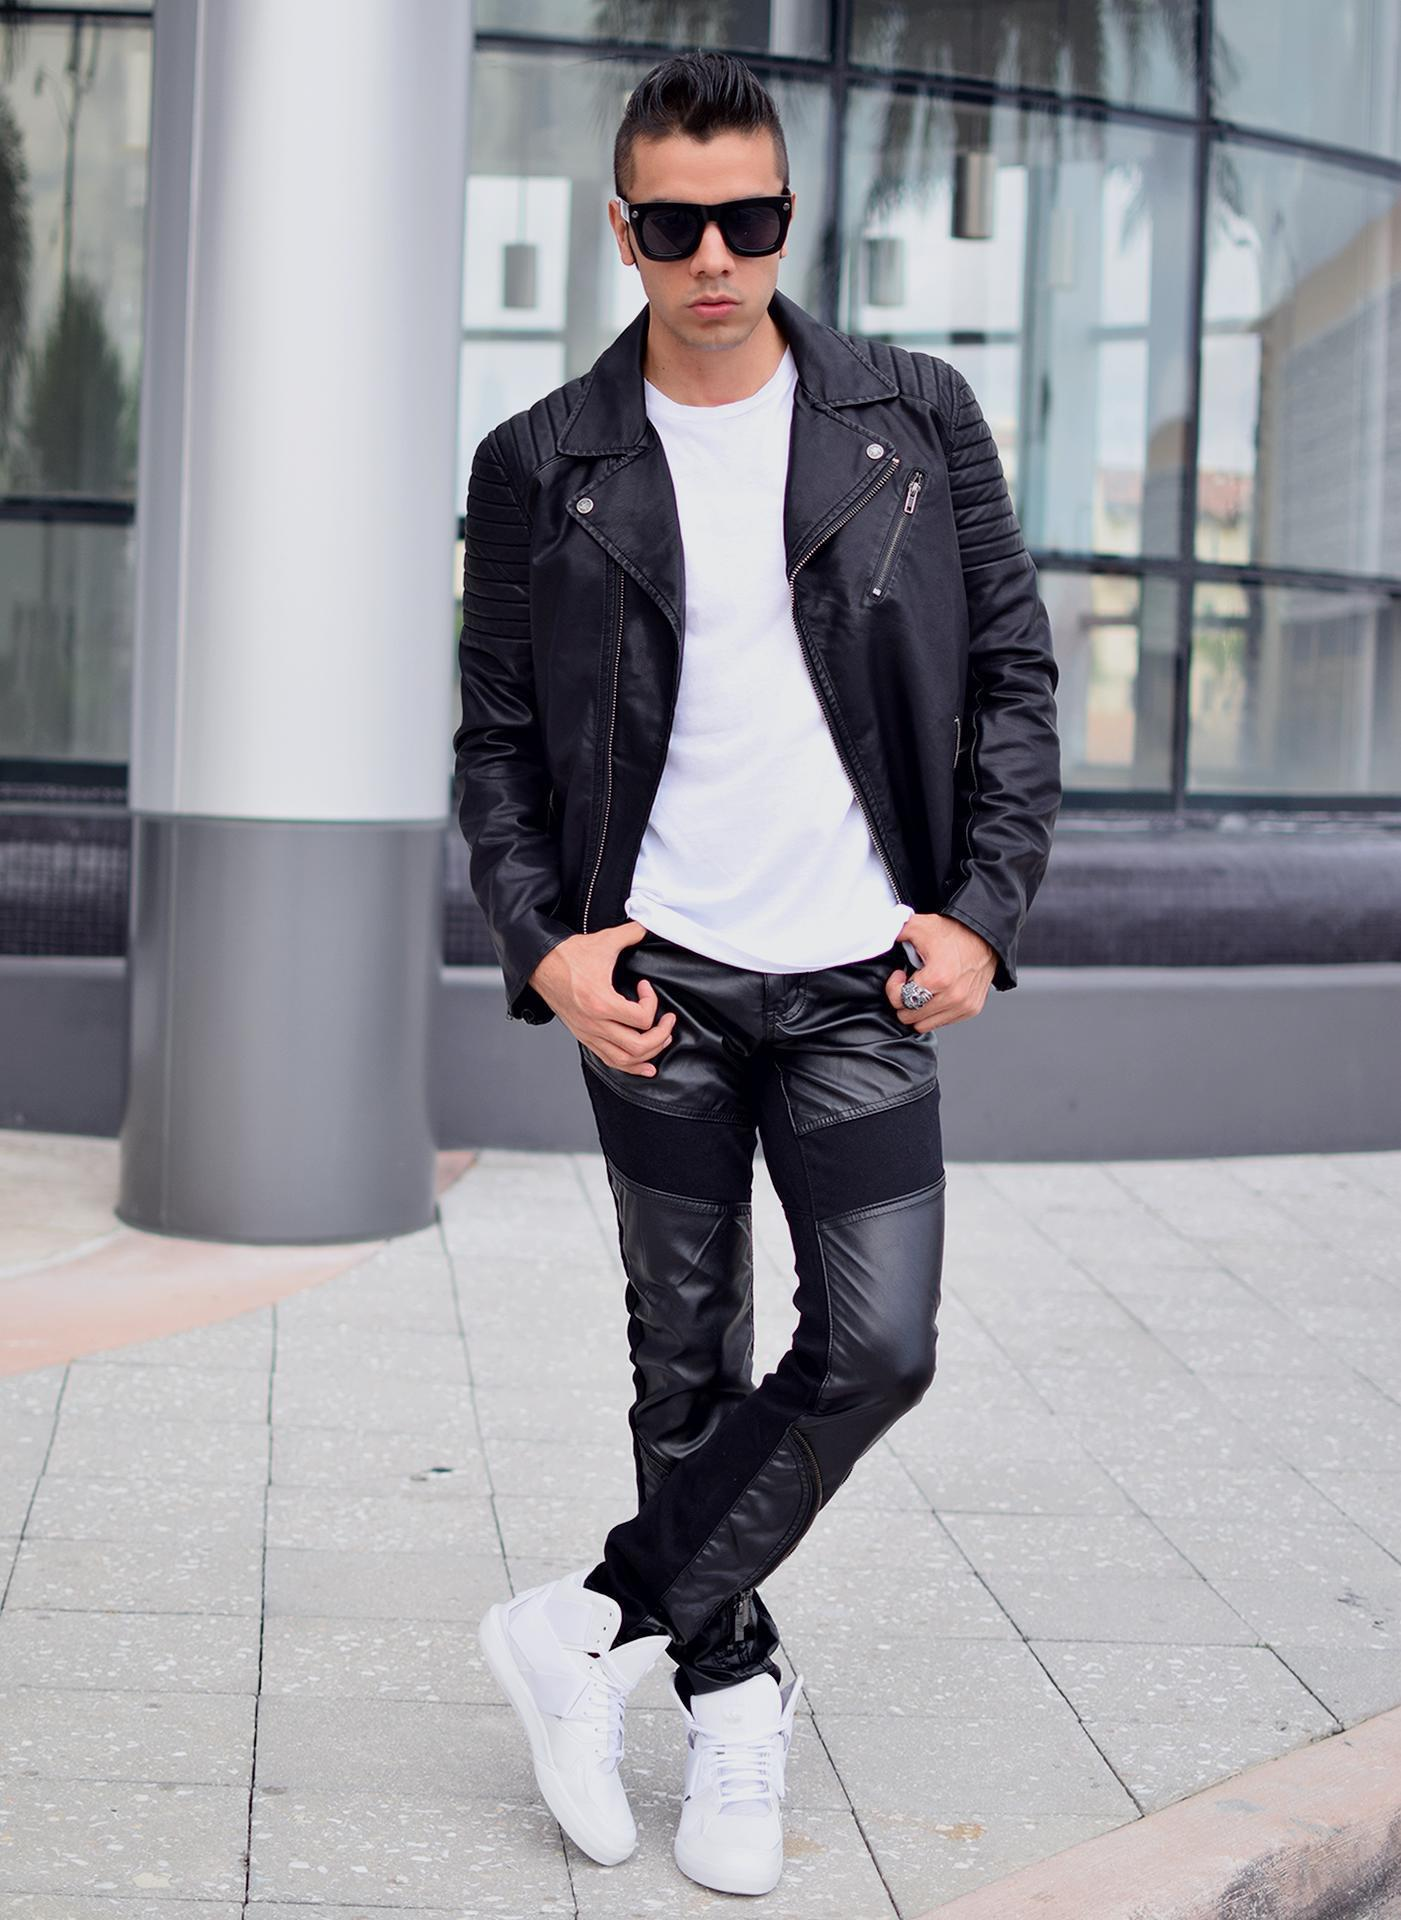 Men's Black Leather Biker Jacket, White Crew-neck T-shirt, Black ...